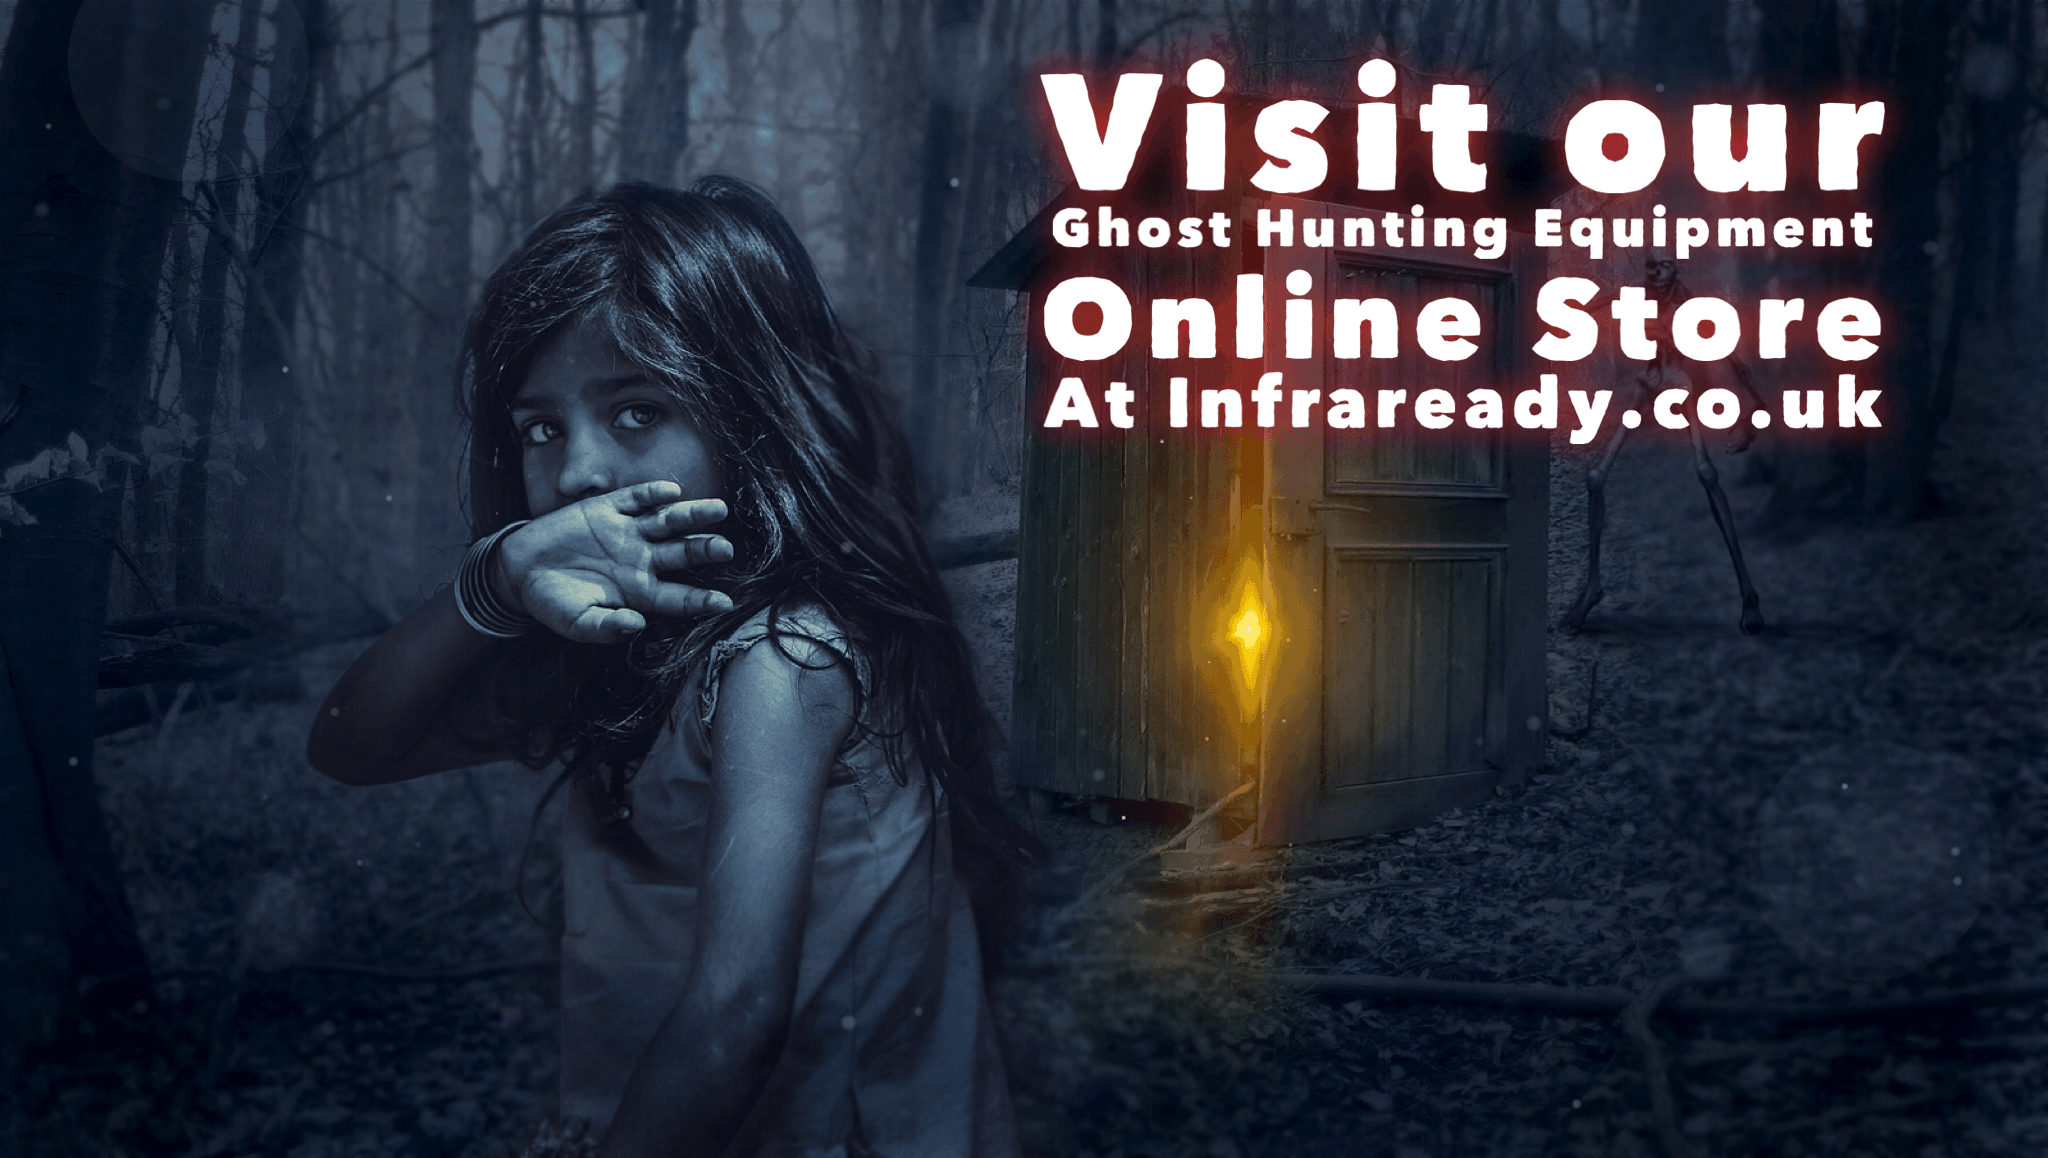 Ghost hunting equipment shop